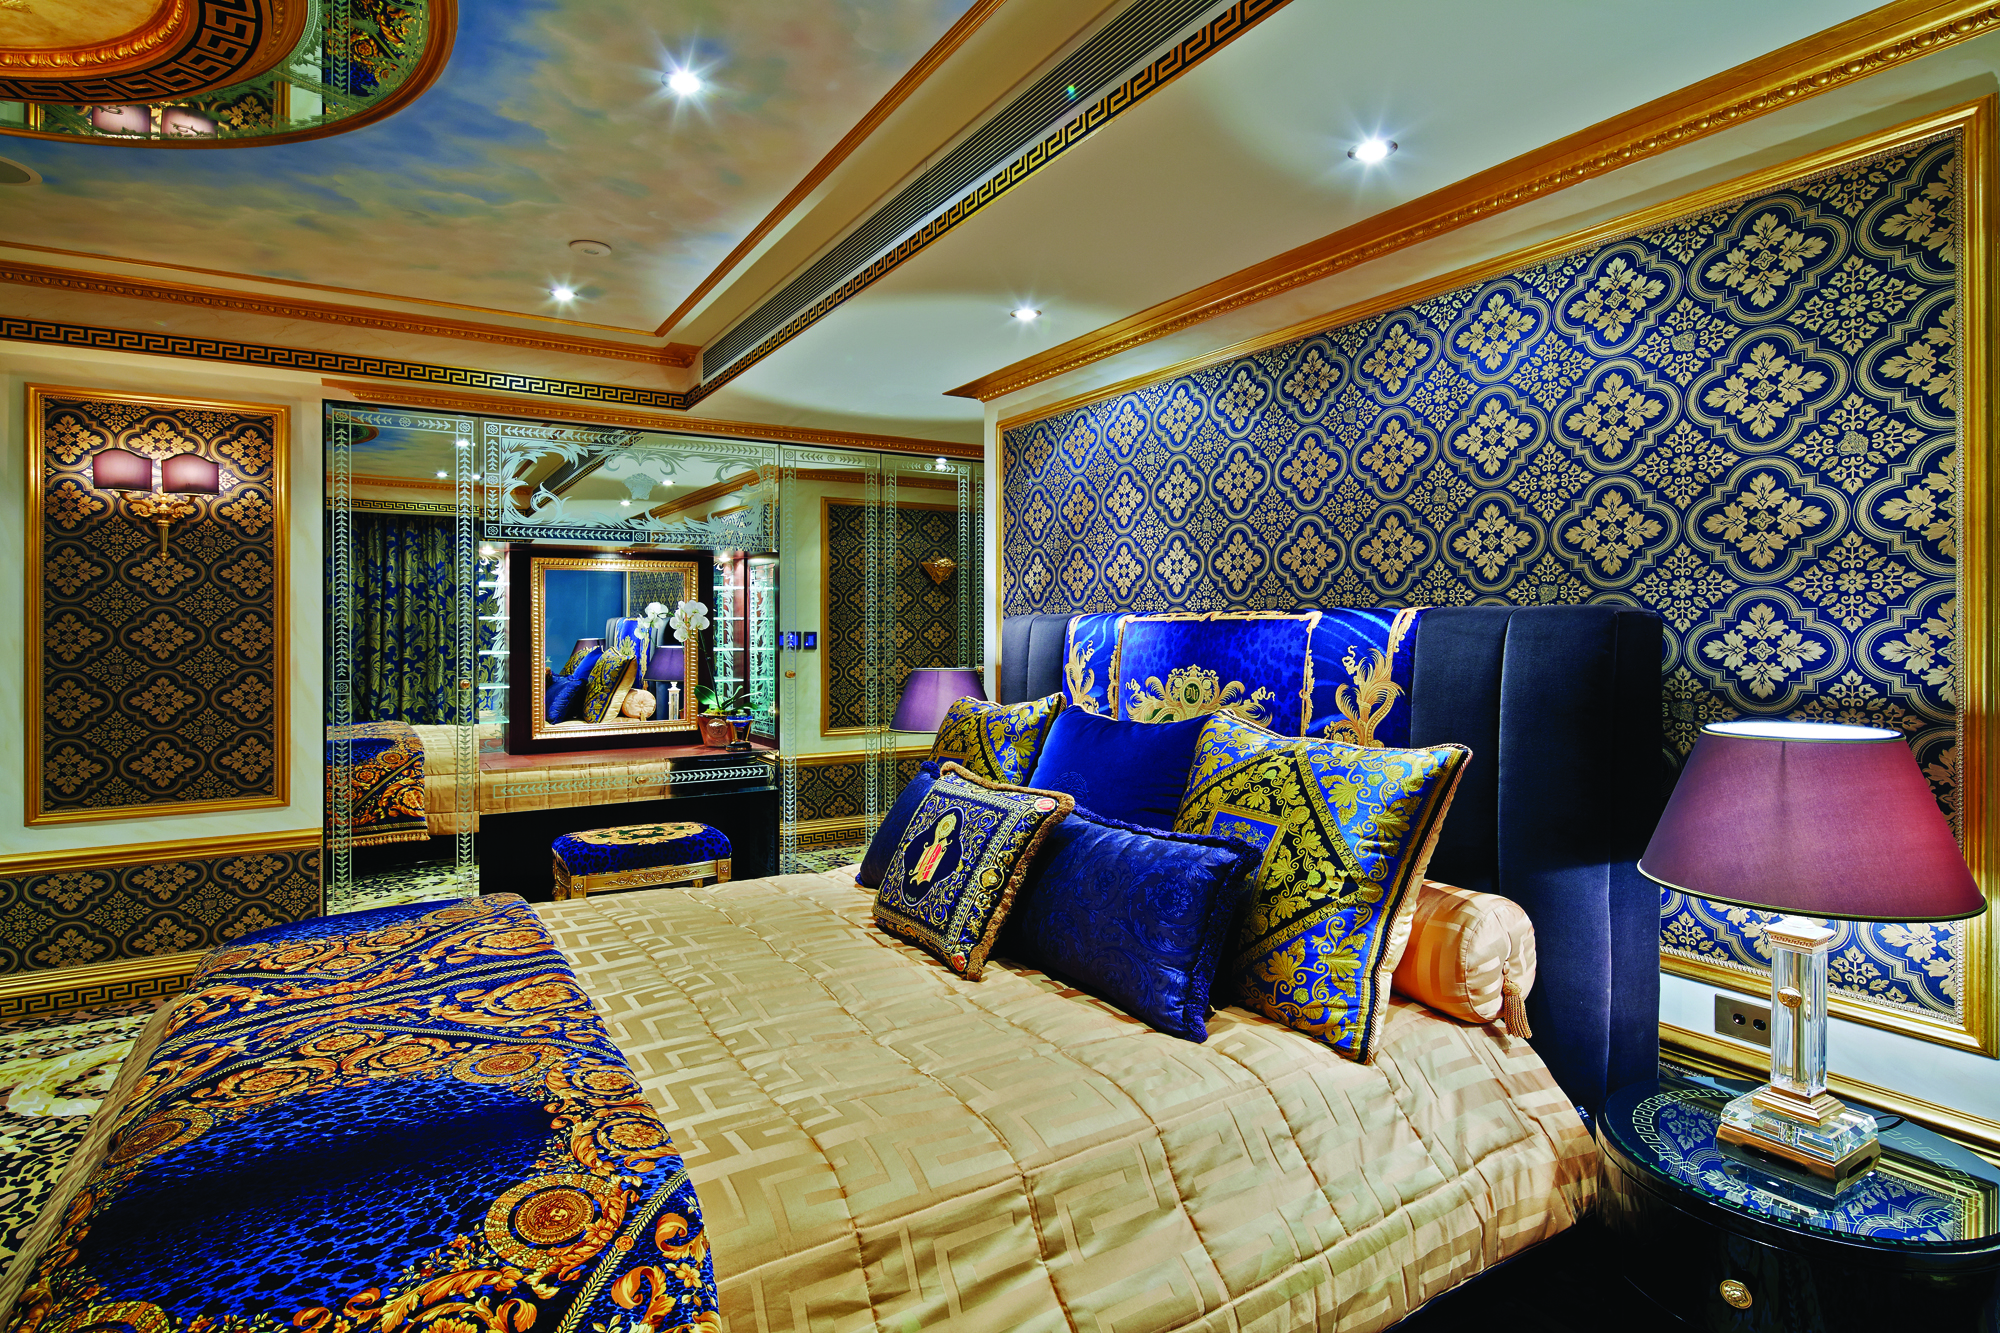 fabric was applied to all the French paneled walls and custom made hand  tufted carpet  designed in Versace style was used throughout the bedrooms    all. Versace Home  Versace Interior Design  Versace Home Products